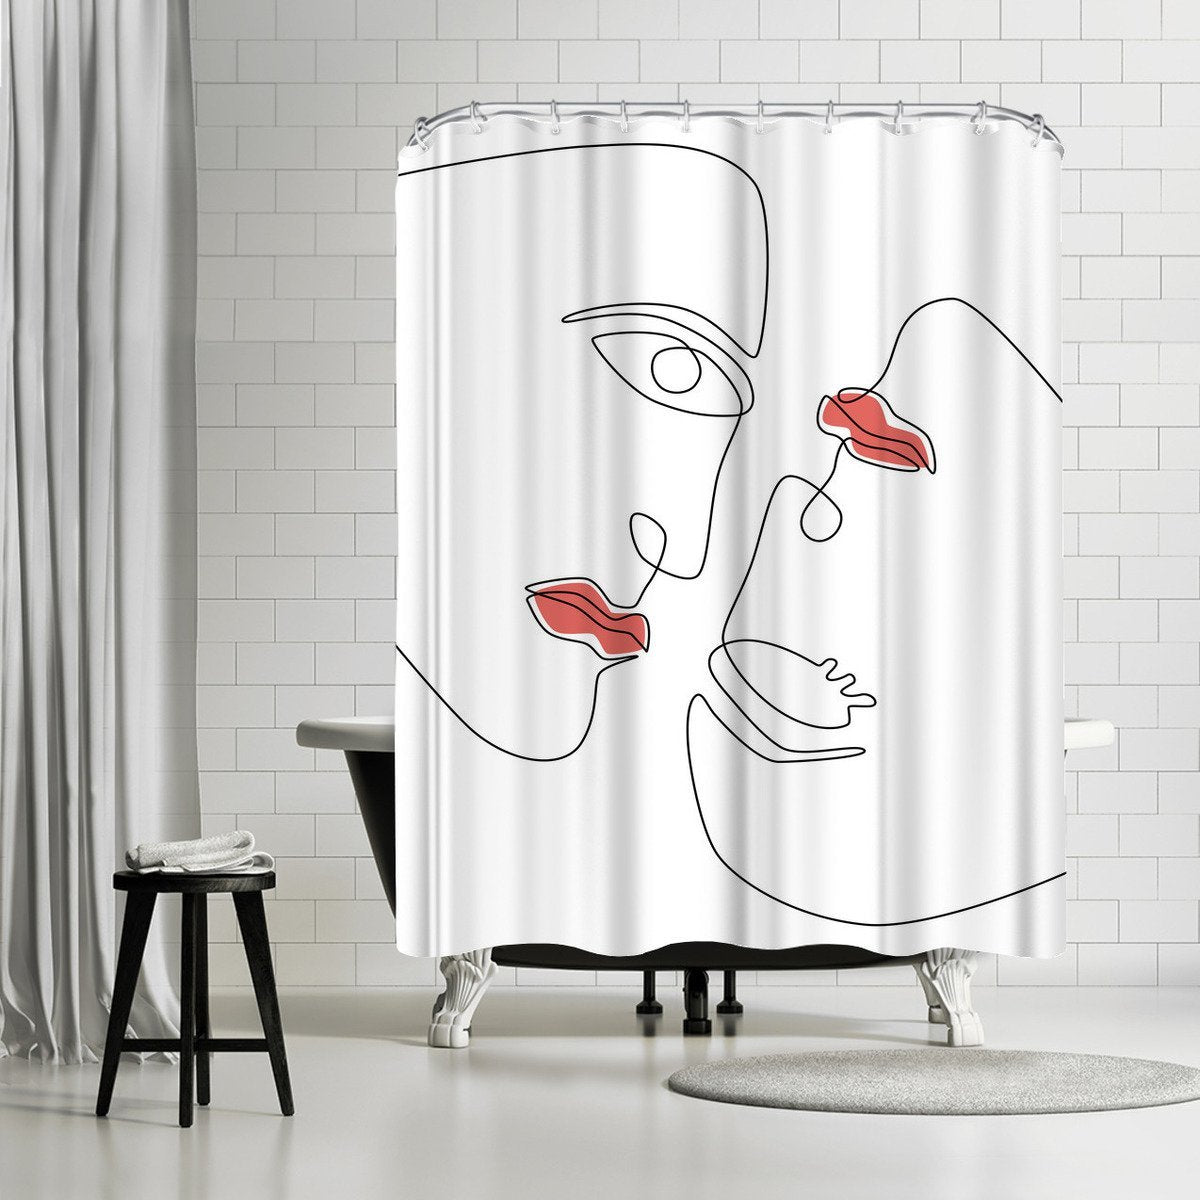 Abstraction Faces by Explicit Design Shower Curtain - Shower Curtain - Americanflat